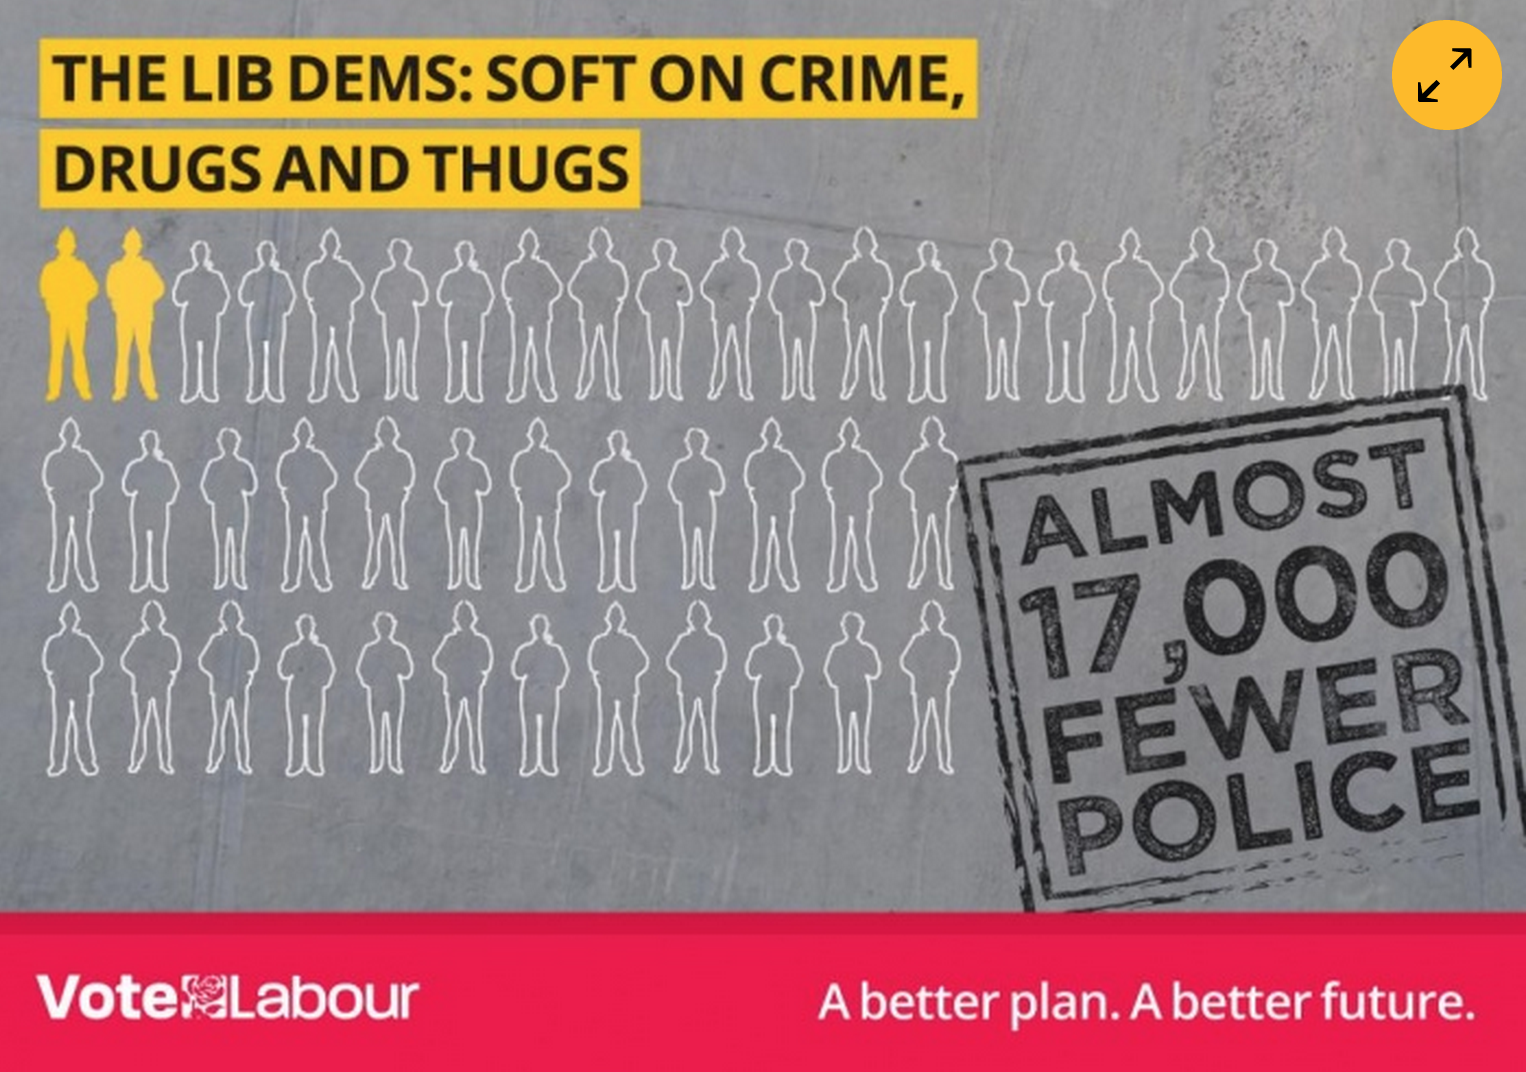 And you think those anti-immigration mugs were bad? Labour's 'appalling gutter politics' on drugs